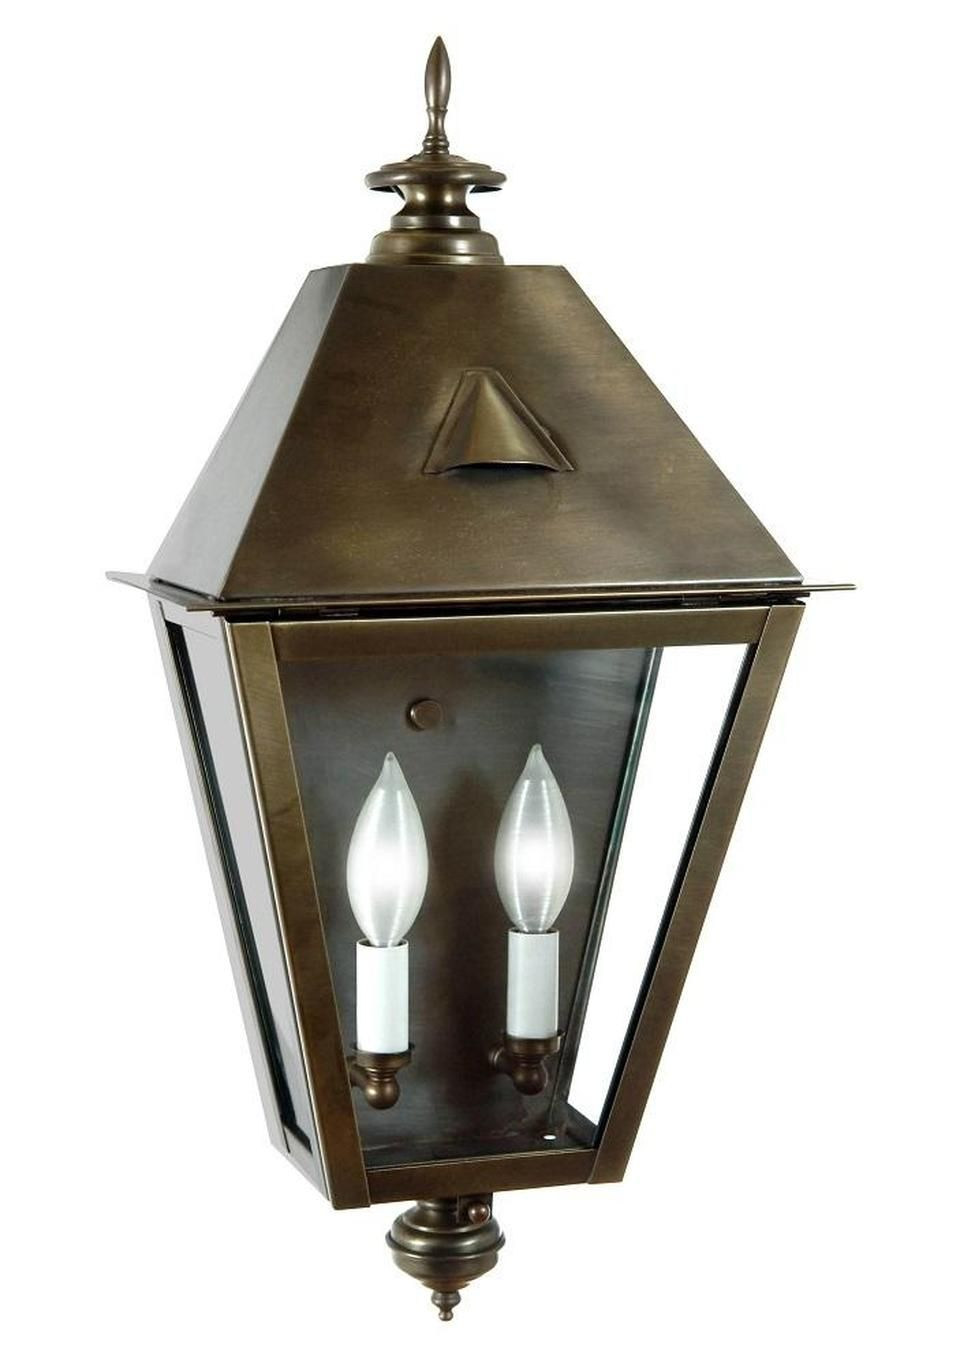 Fourteenth Colony Outdoor Lighting Country Manor Pocket Wall Lantern 2 Candle Bulbs 4221 H In 2020 Wall Lantern Steel Lighting Candle Bulbs